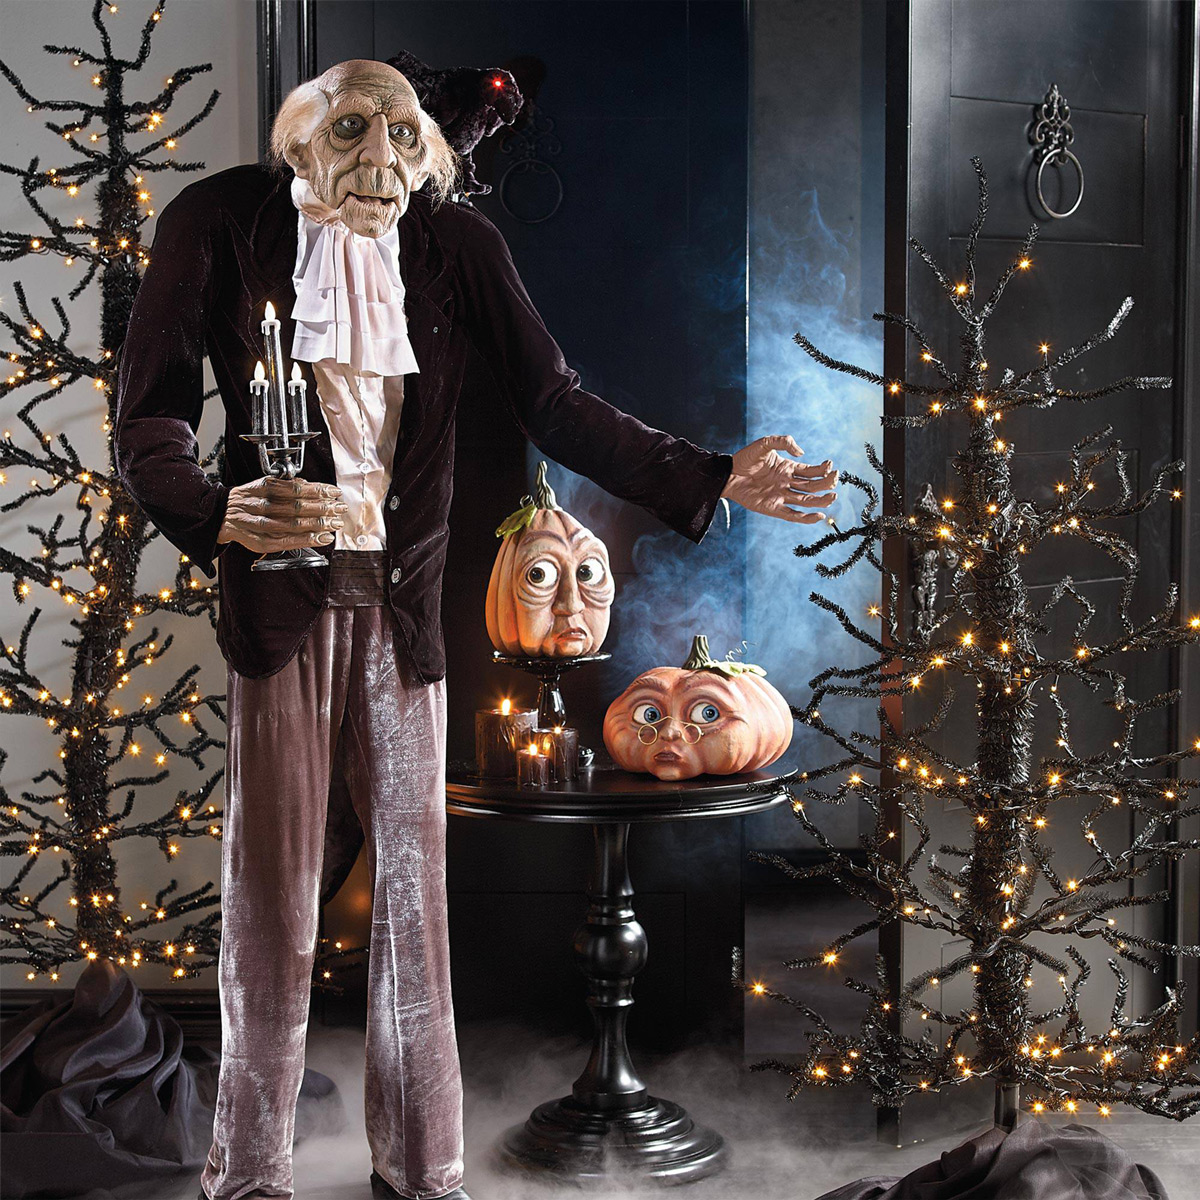 Moving Halloween Decorations: Creepy Moving Halloween Trees